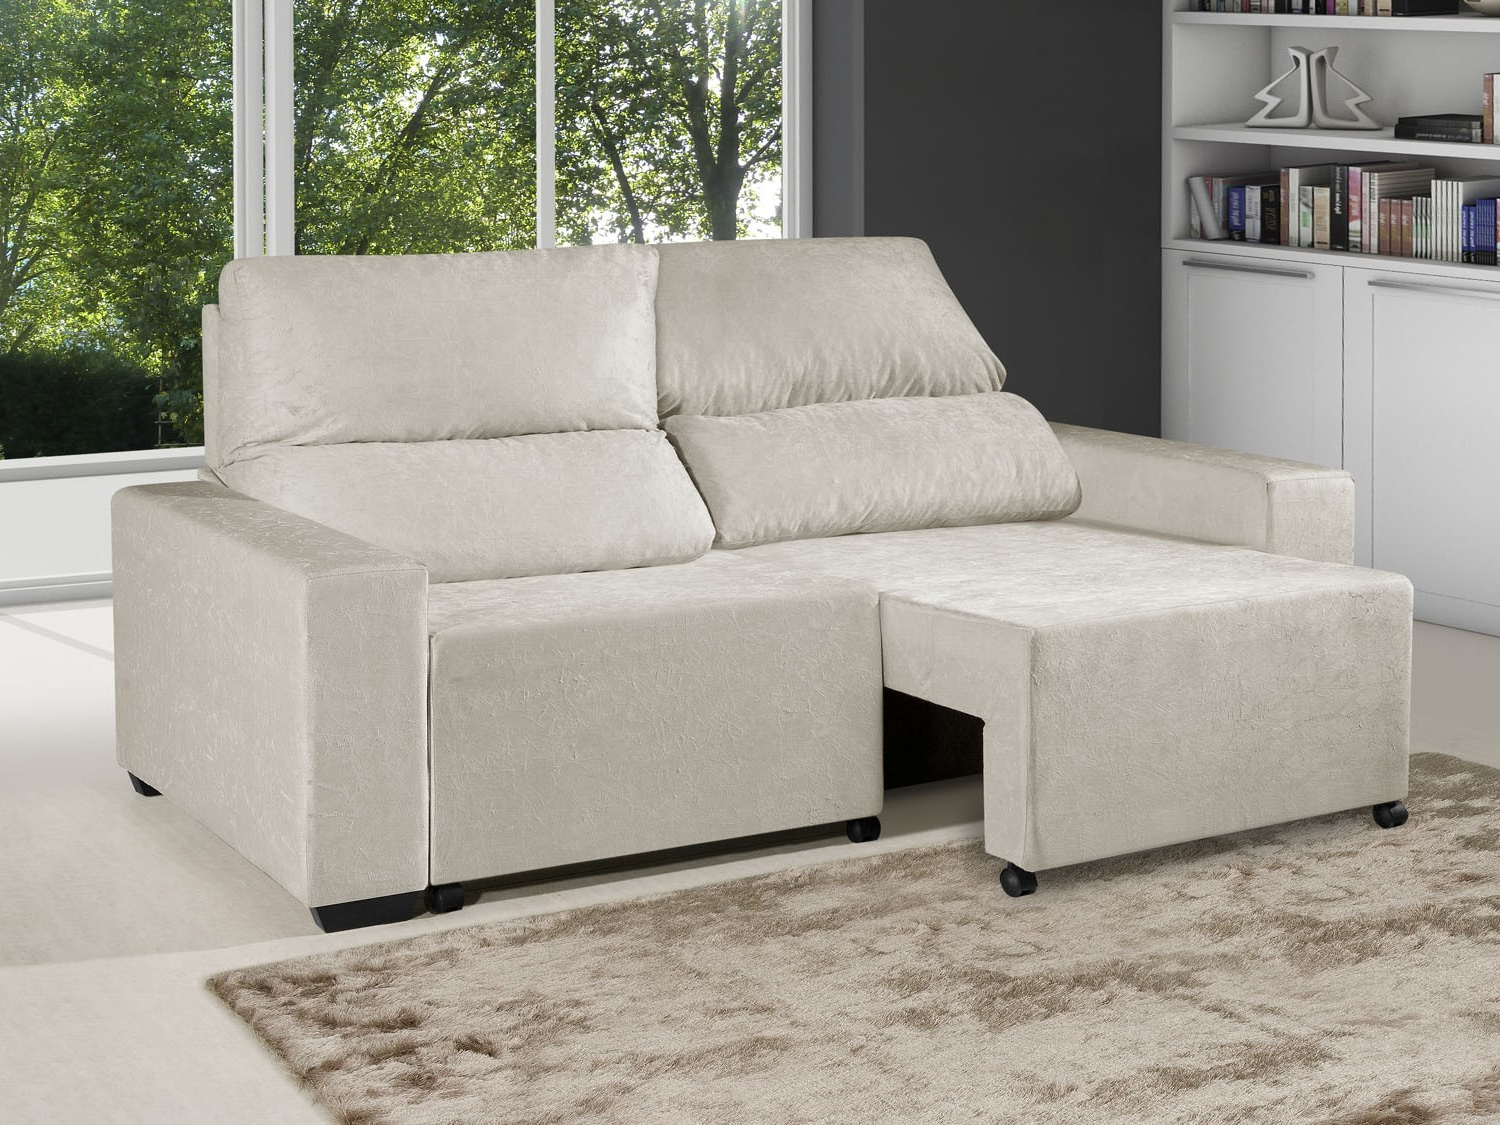 Sofa Confort Drdp Meglio sofa Confort Exquisite Reclinavel 22 Apprecie Reto 3 Lugares